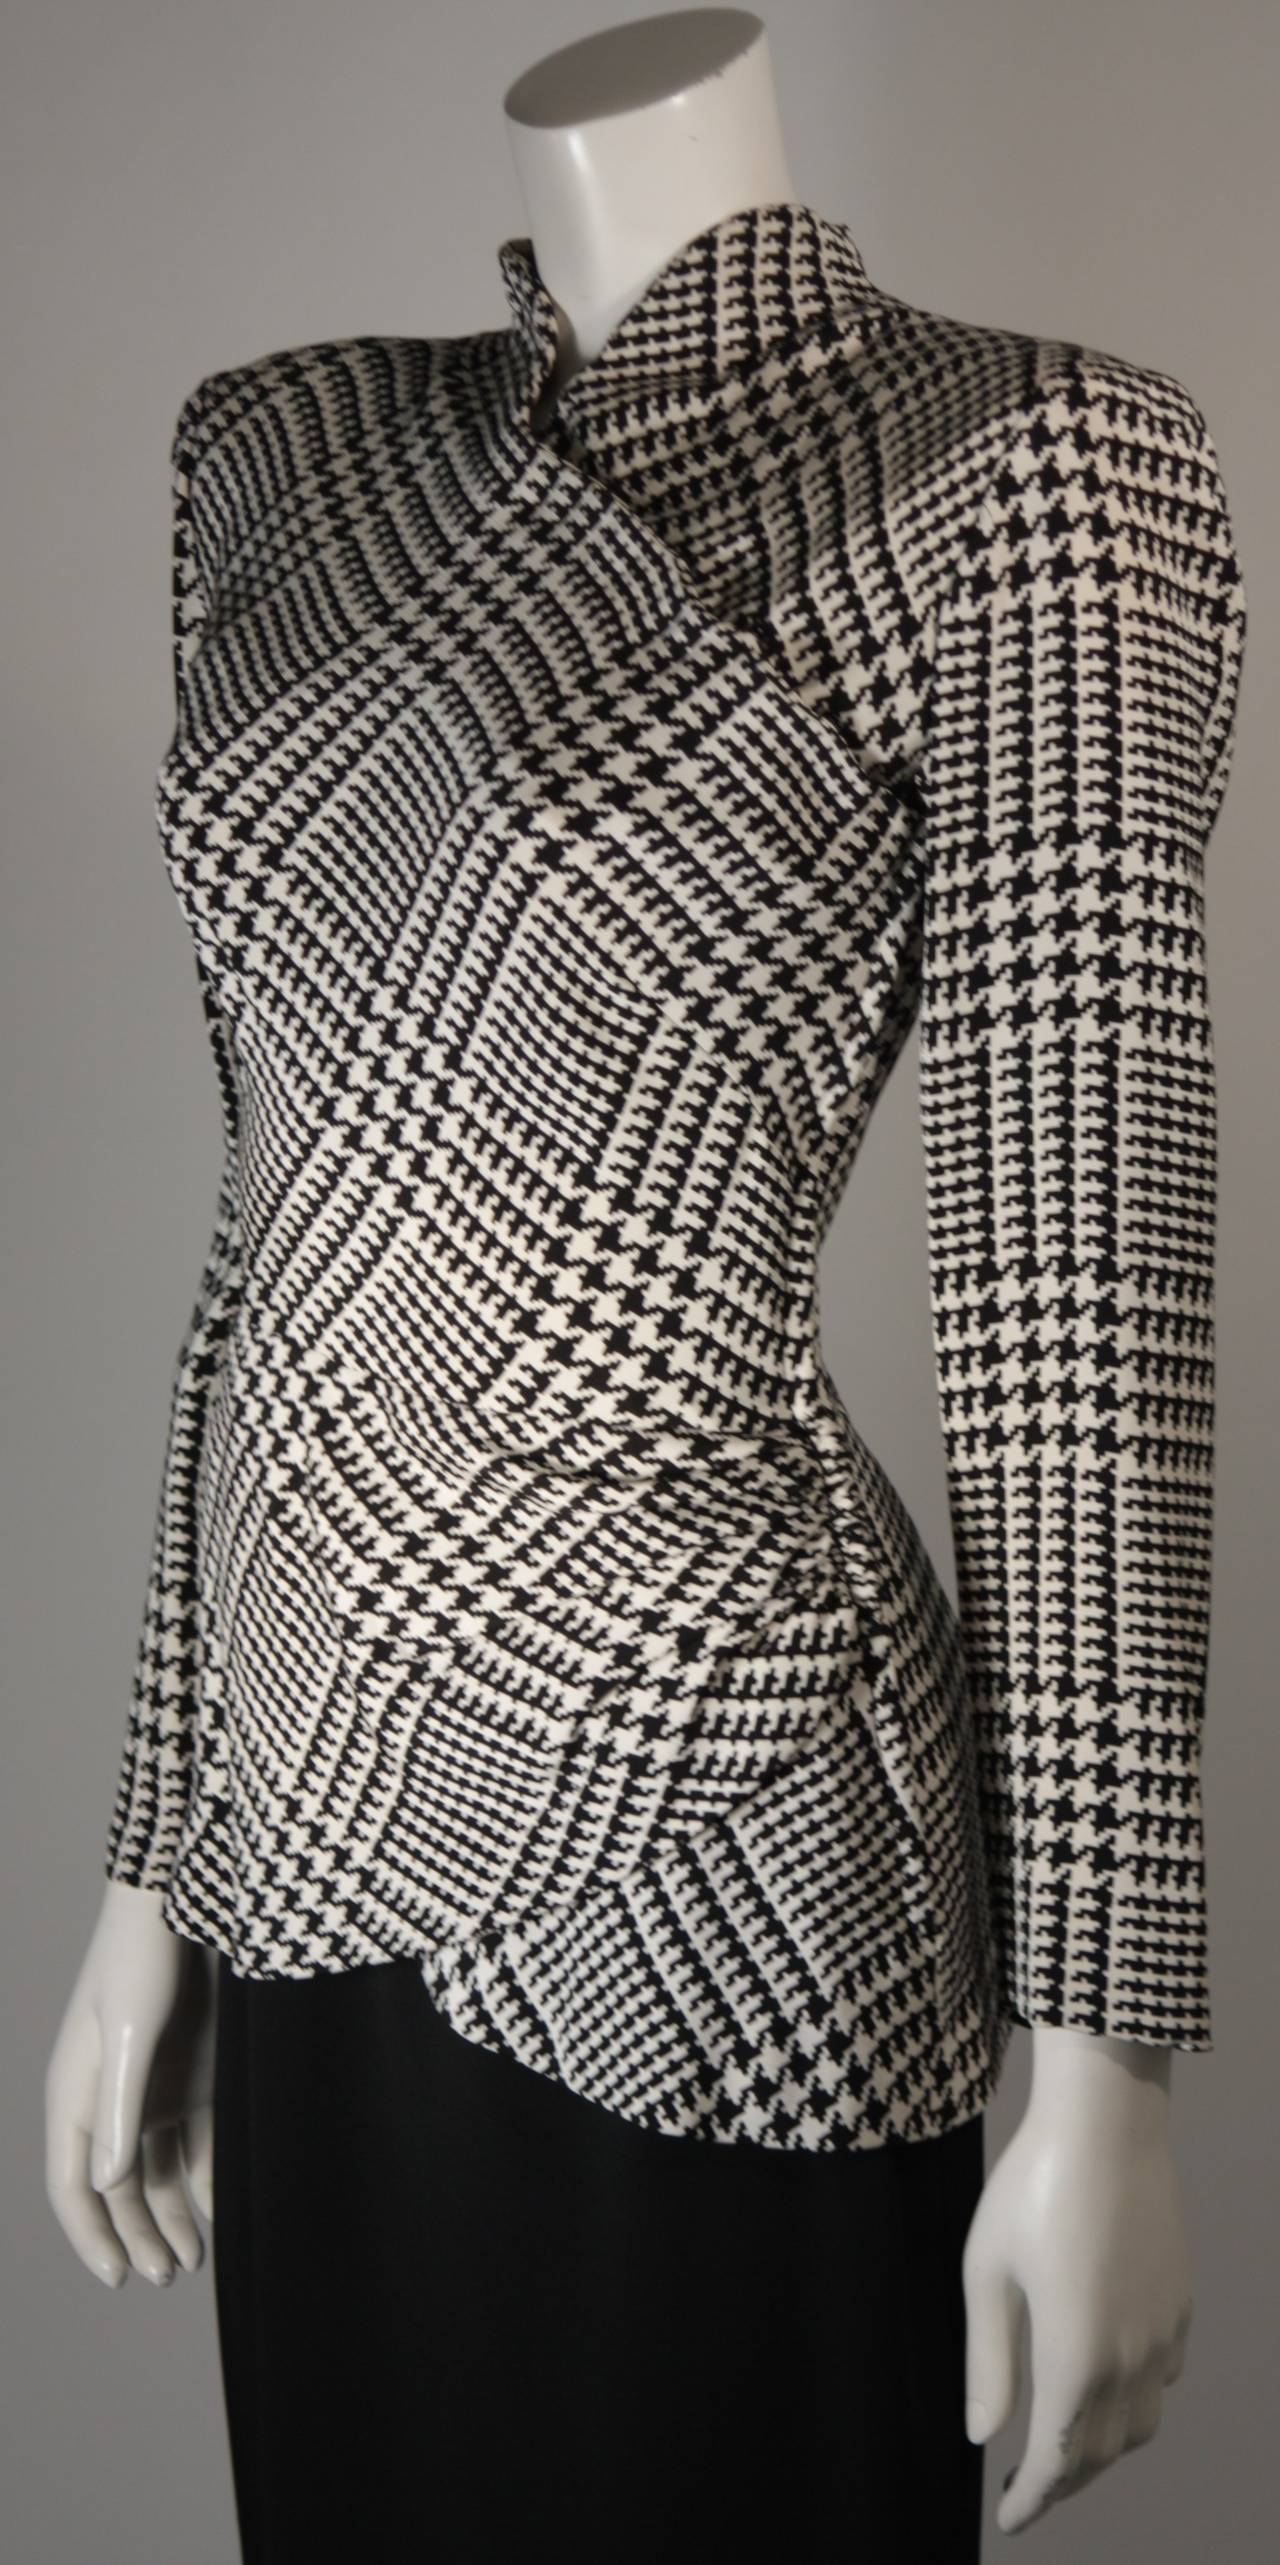 Stay in style with a Houndstooth Blazer. Find a Blue Houndstooth Blazer, Grey Houndstooth Blazer and more at Macy's.